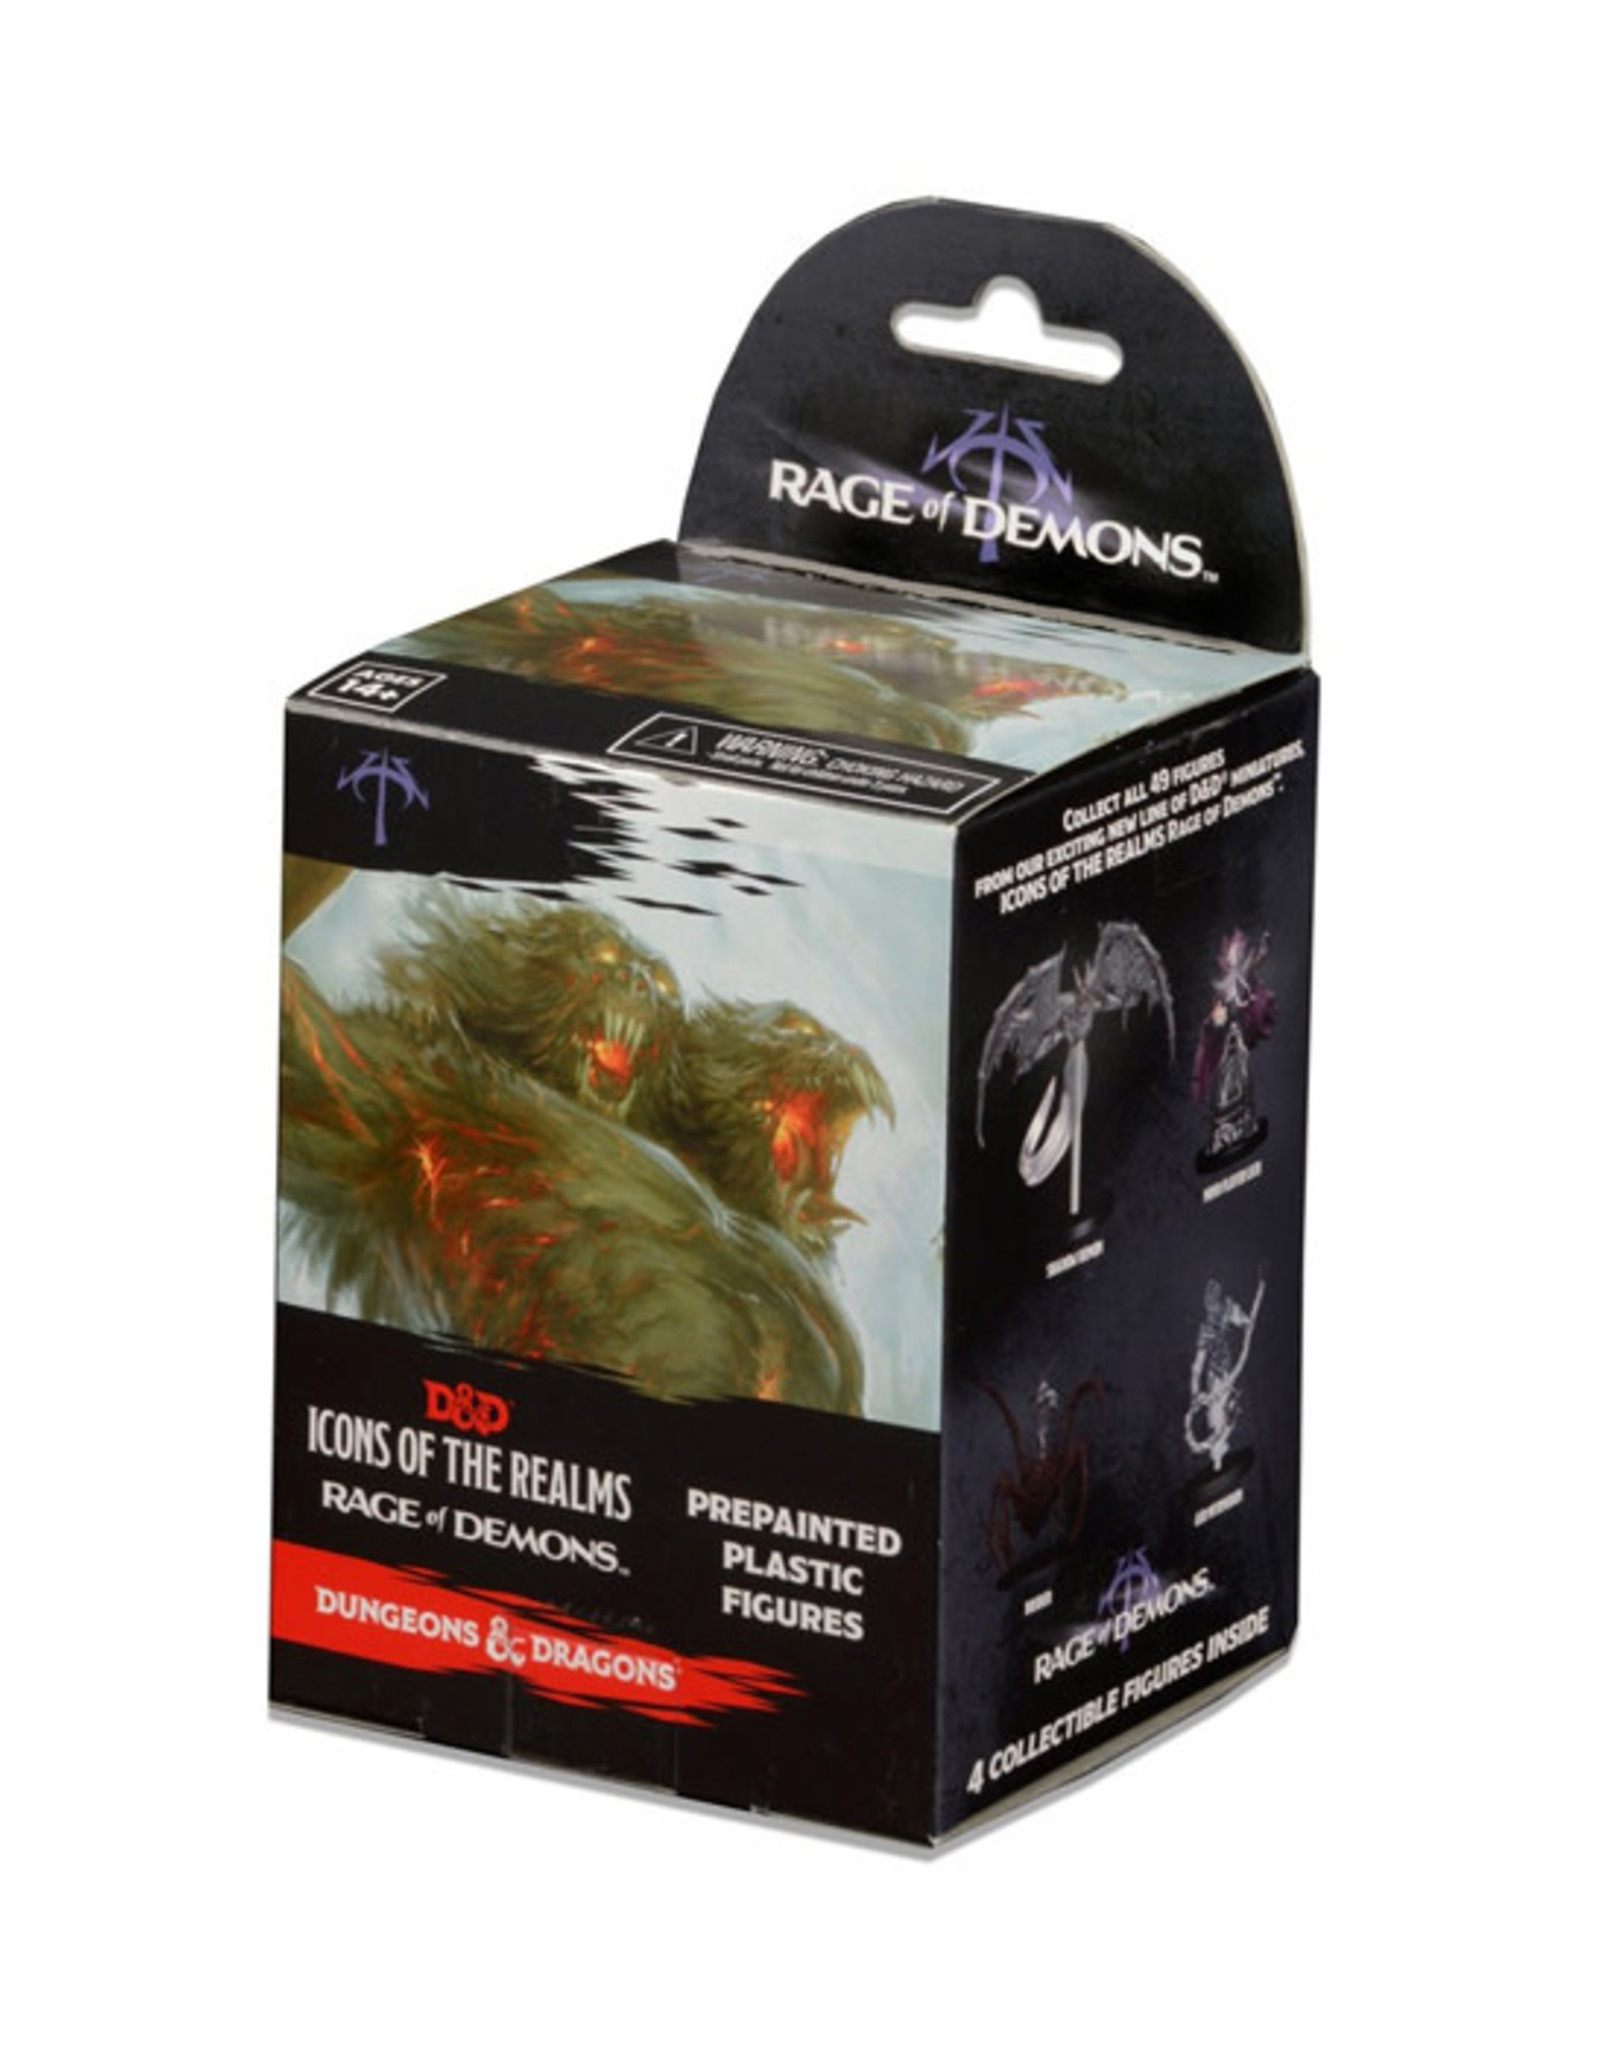 Dungeons & Dragons Dungeons & Dragons: Icons of the Realms - Rage of Demons - Booster Pack